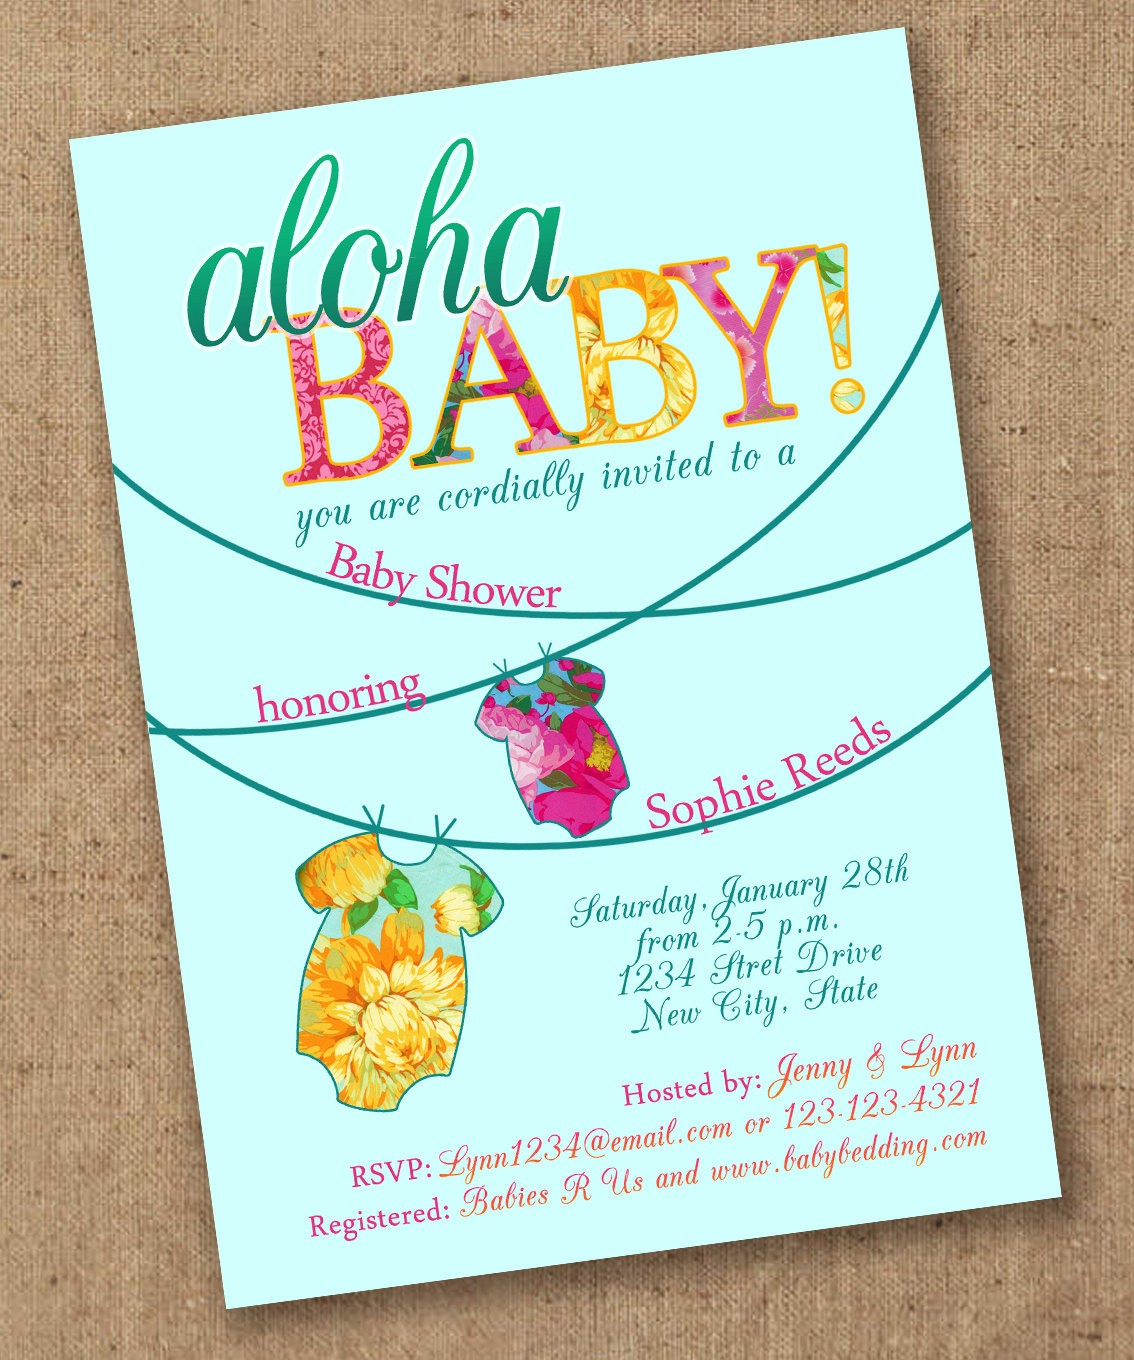 Aloha Baby Shower Invitation Luau Etsy Invitations 8 | Wadatlanta - Free Printable Luau Baby Shower Invitations